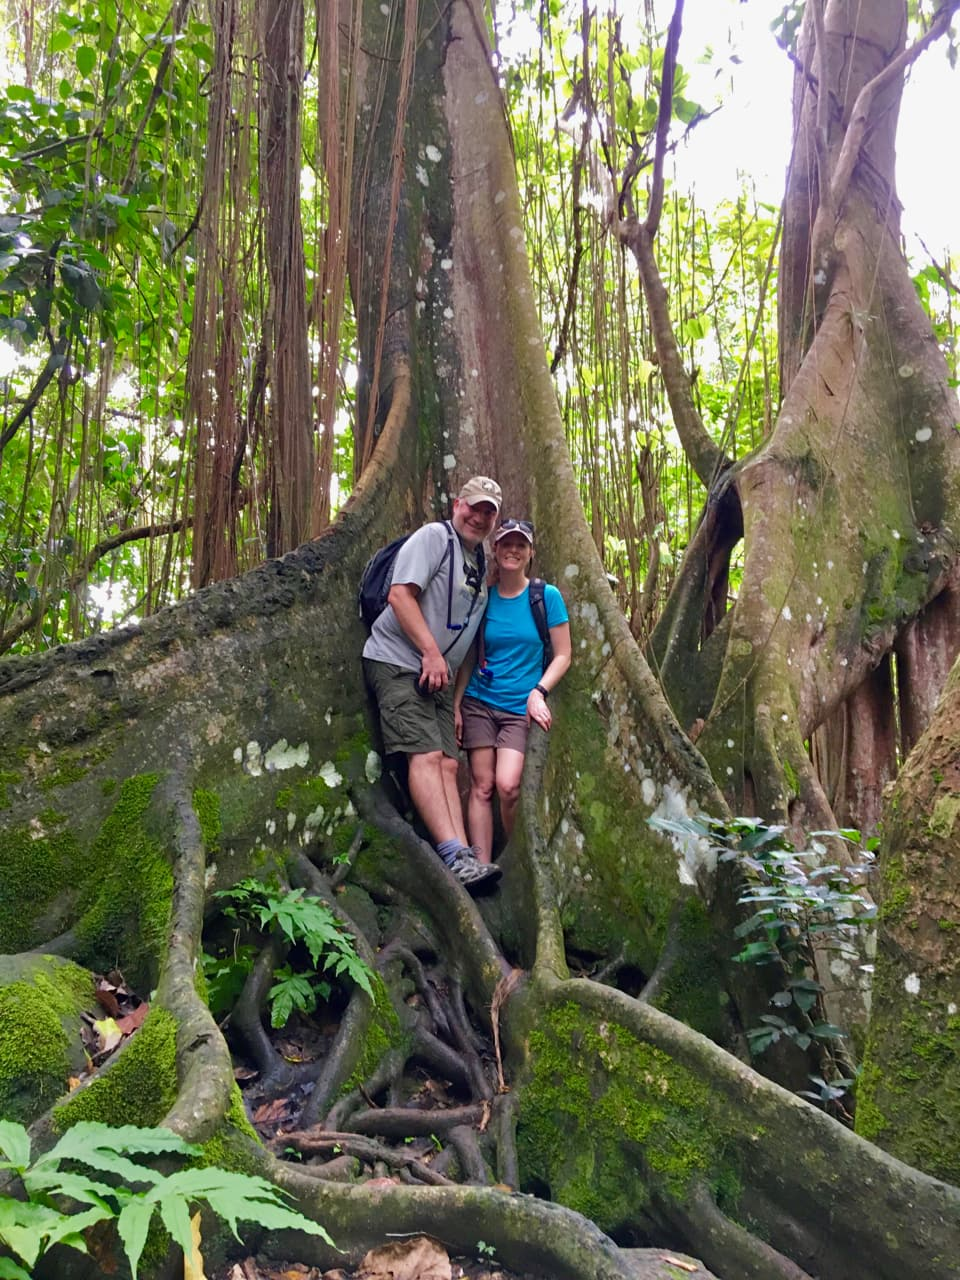 Tucked in a Tree - we love hiking the rainforest in Saint Kitts.